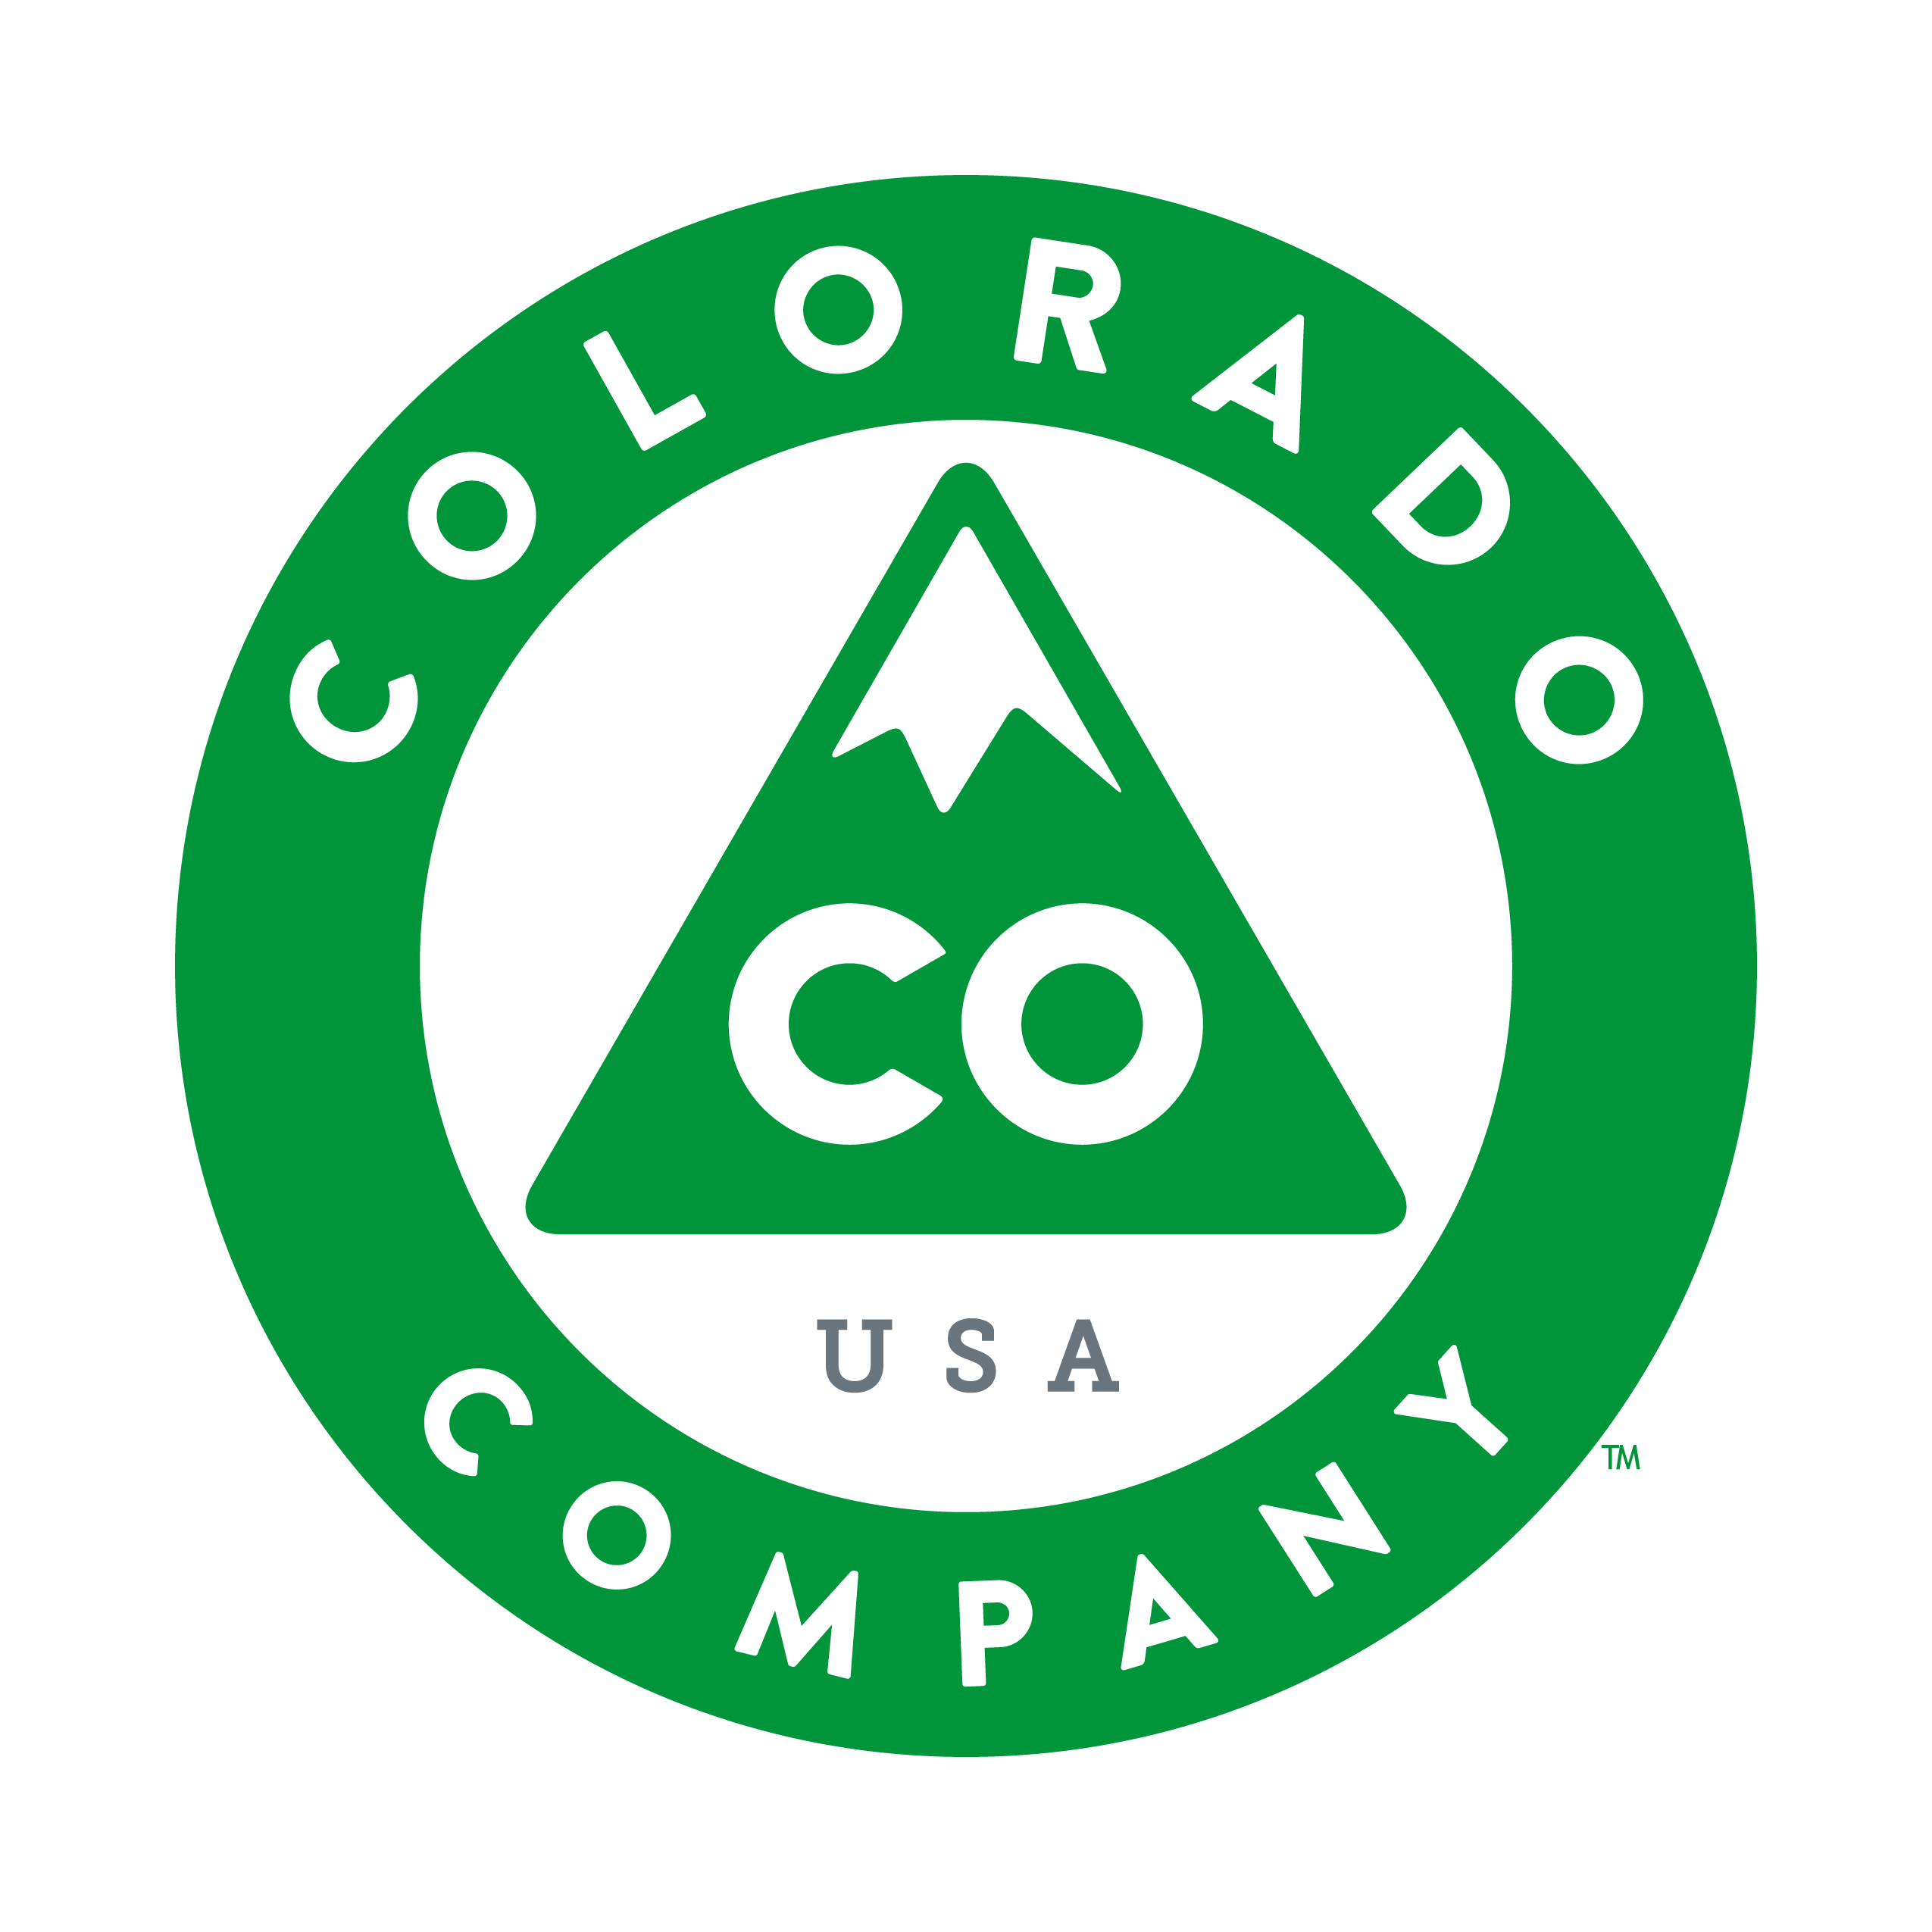 Tall Guns is a Colorado company and displays the Colorado Company logo under license